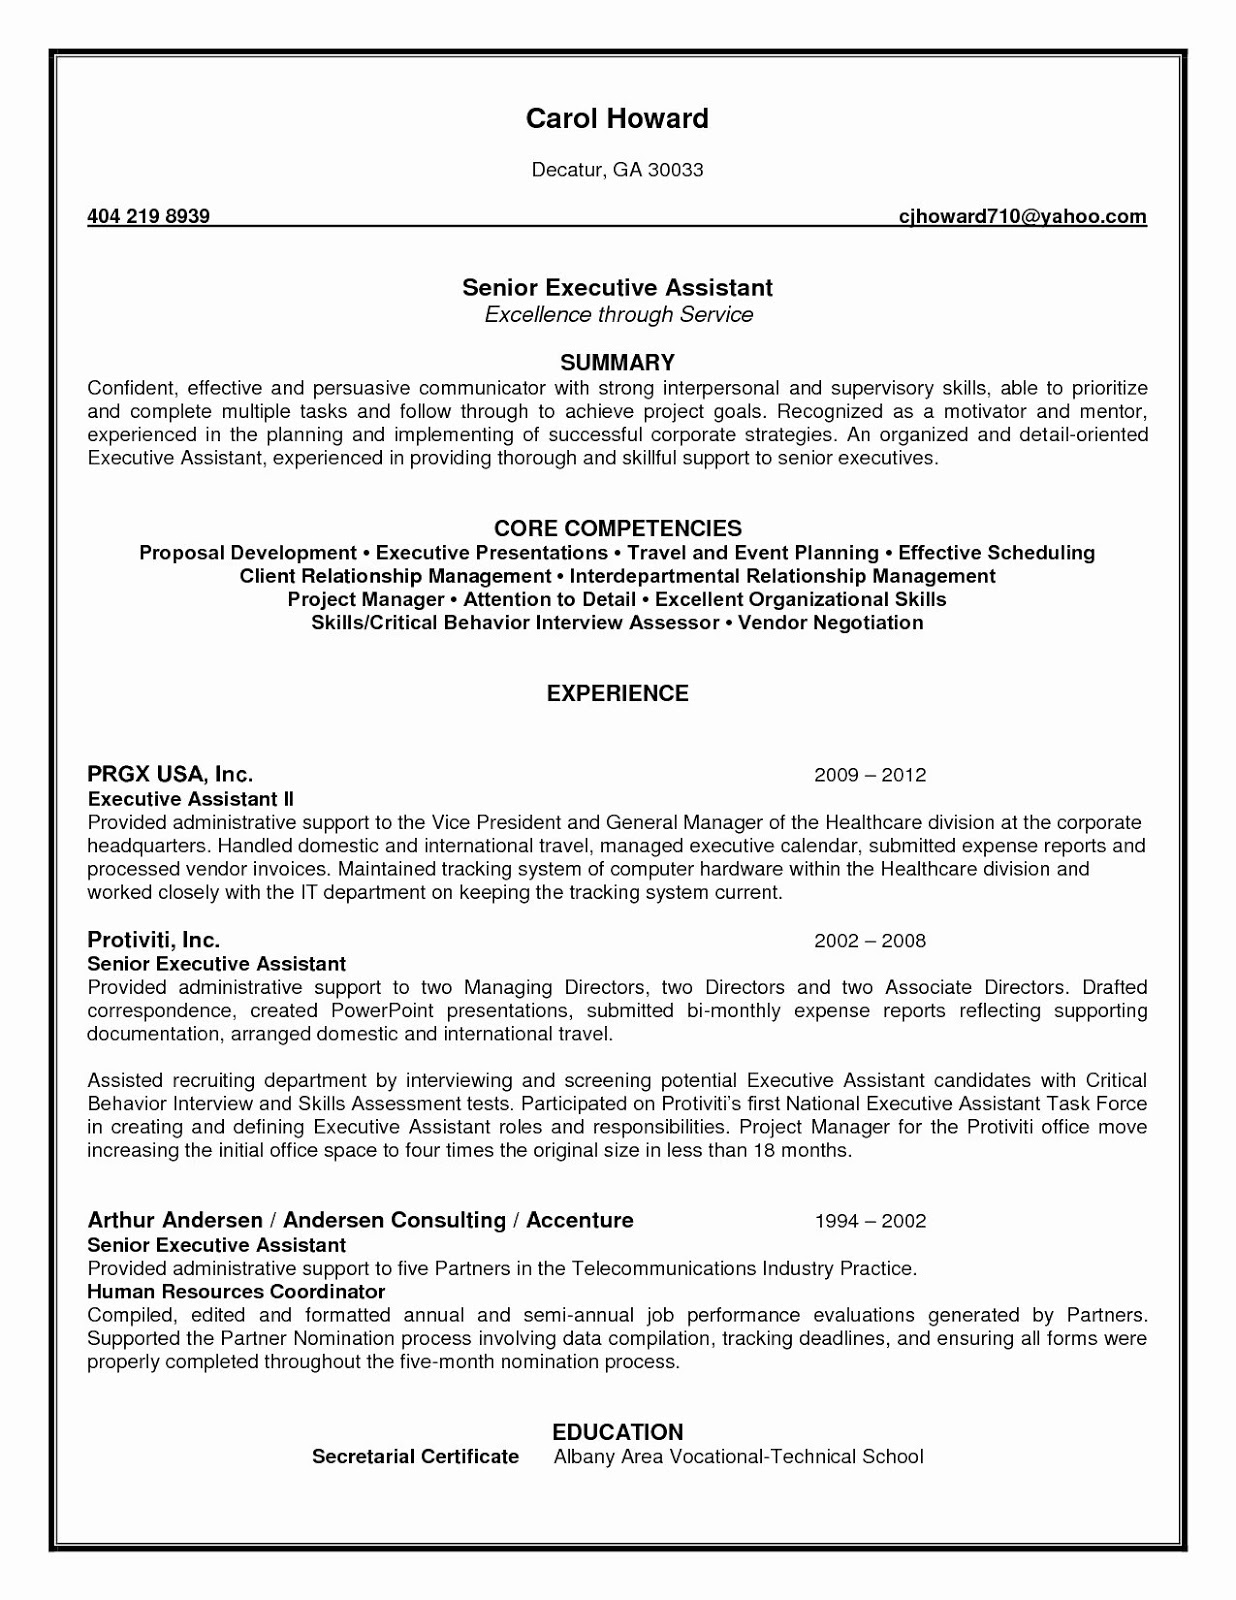 Administrative Assistant Resume Objective 2019, administrative assistant resume objective examples, administrative assistant resume objective samples 2020